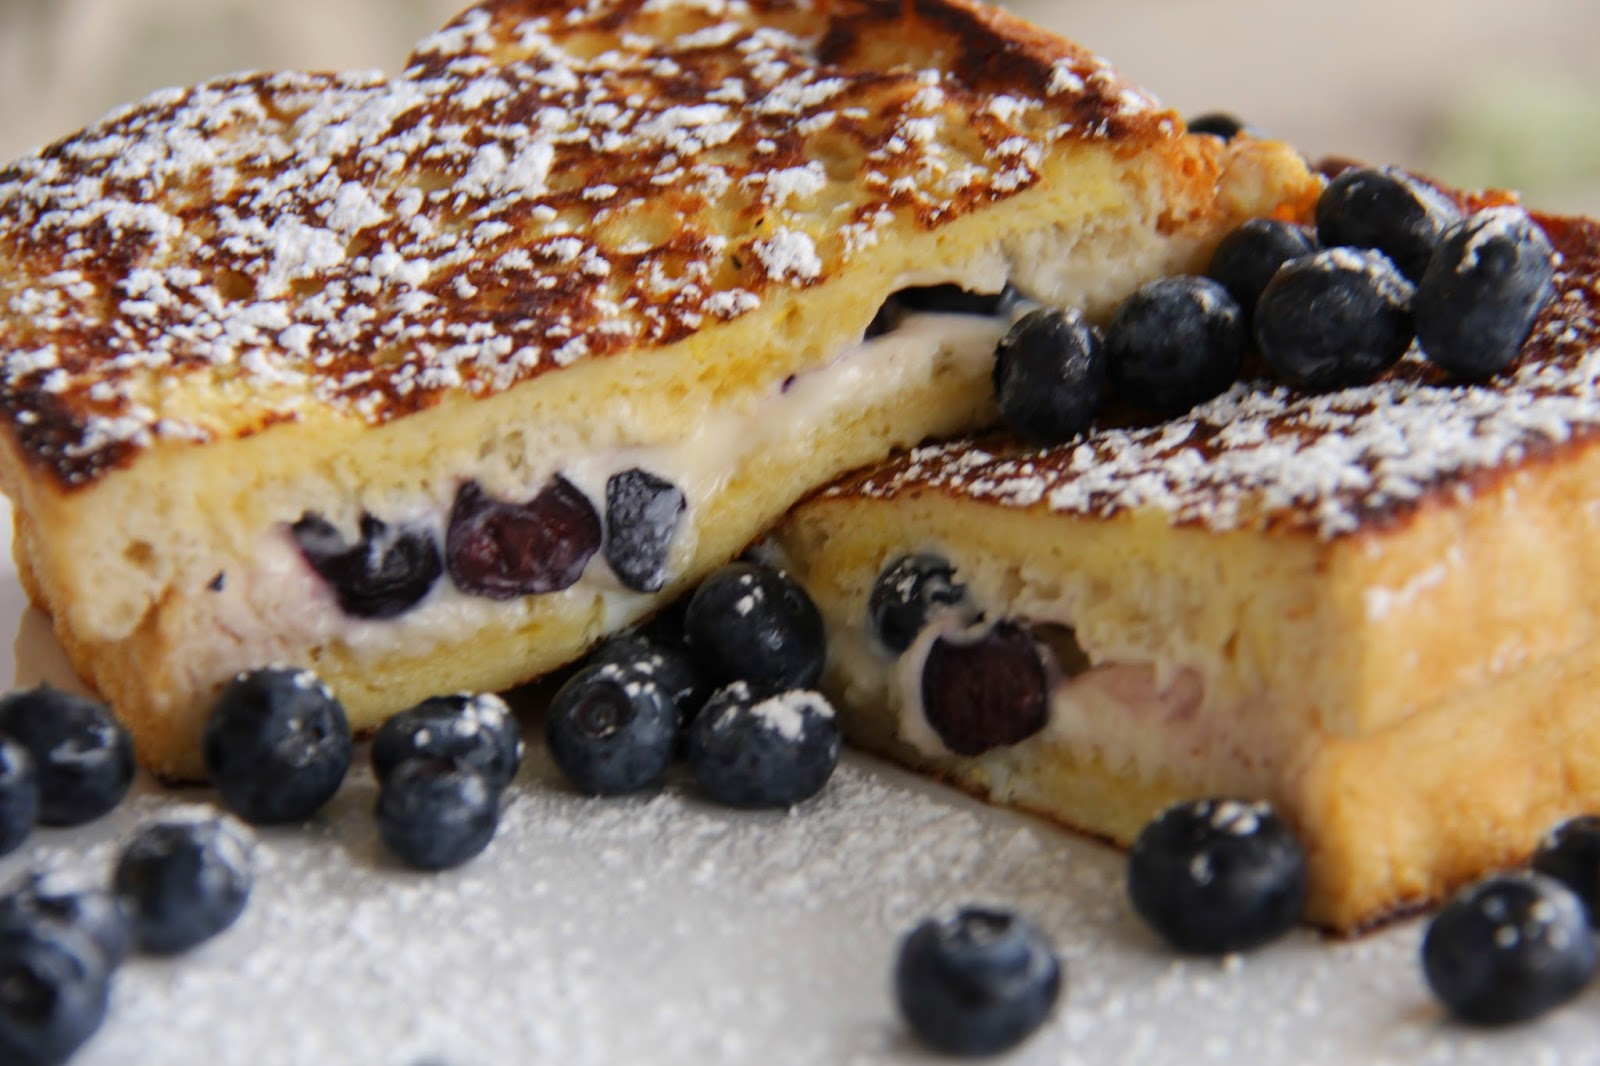 A Bountiful Kitchen Blueberry Cream Cheese Stuffed French